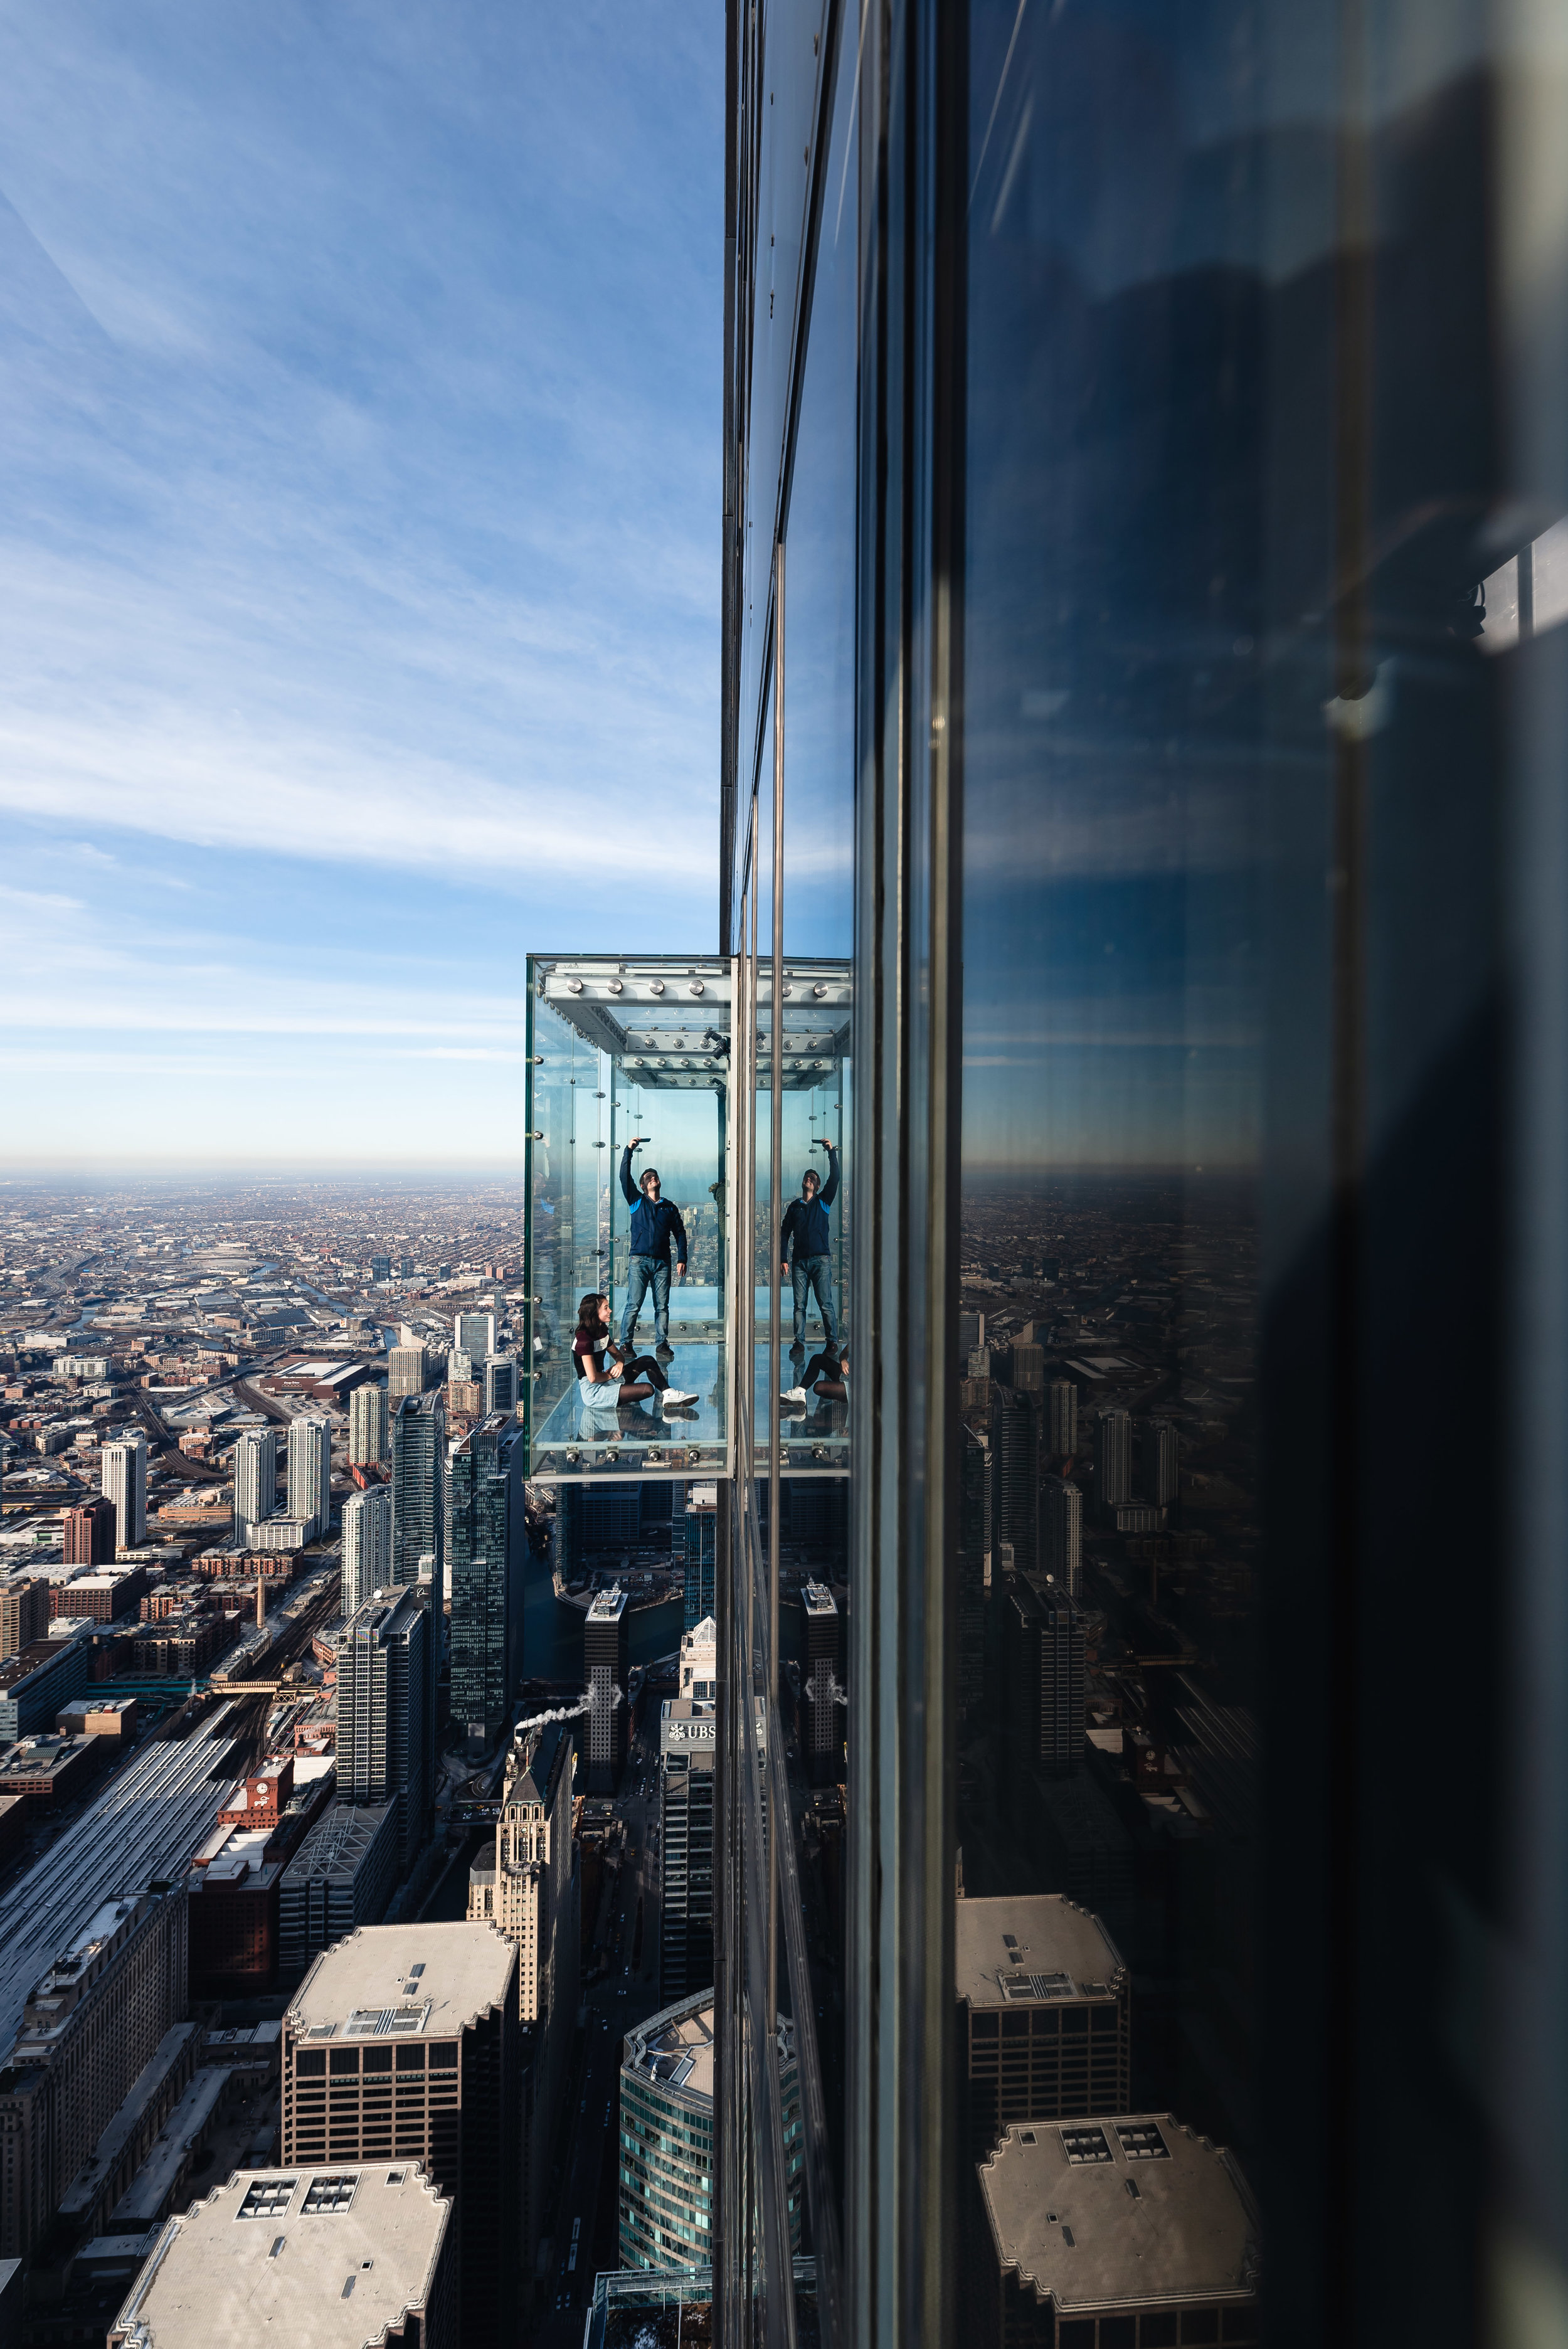 Chicago Willis Tower Sears Tower Cloudy Reflection City Illinois Sky Deck Sky Box Selfie